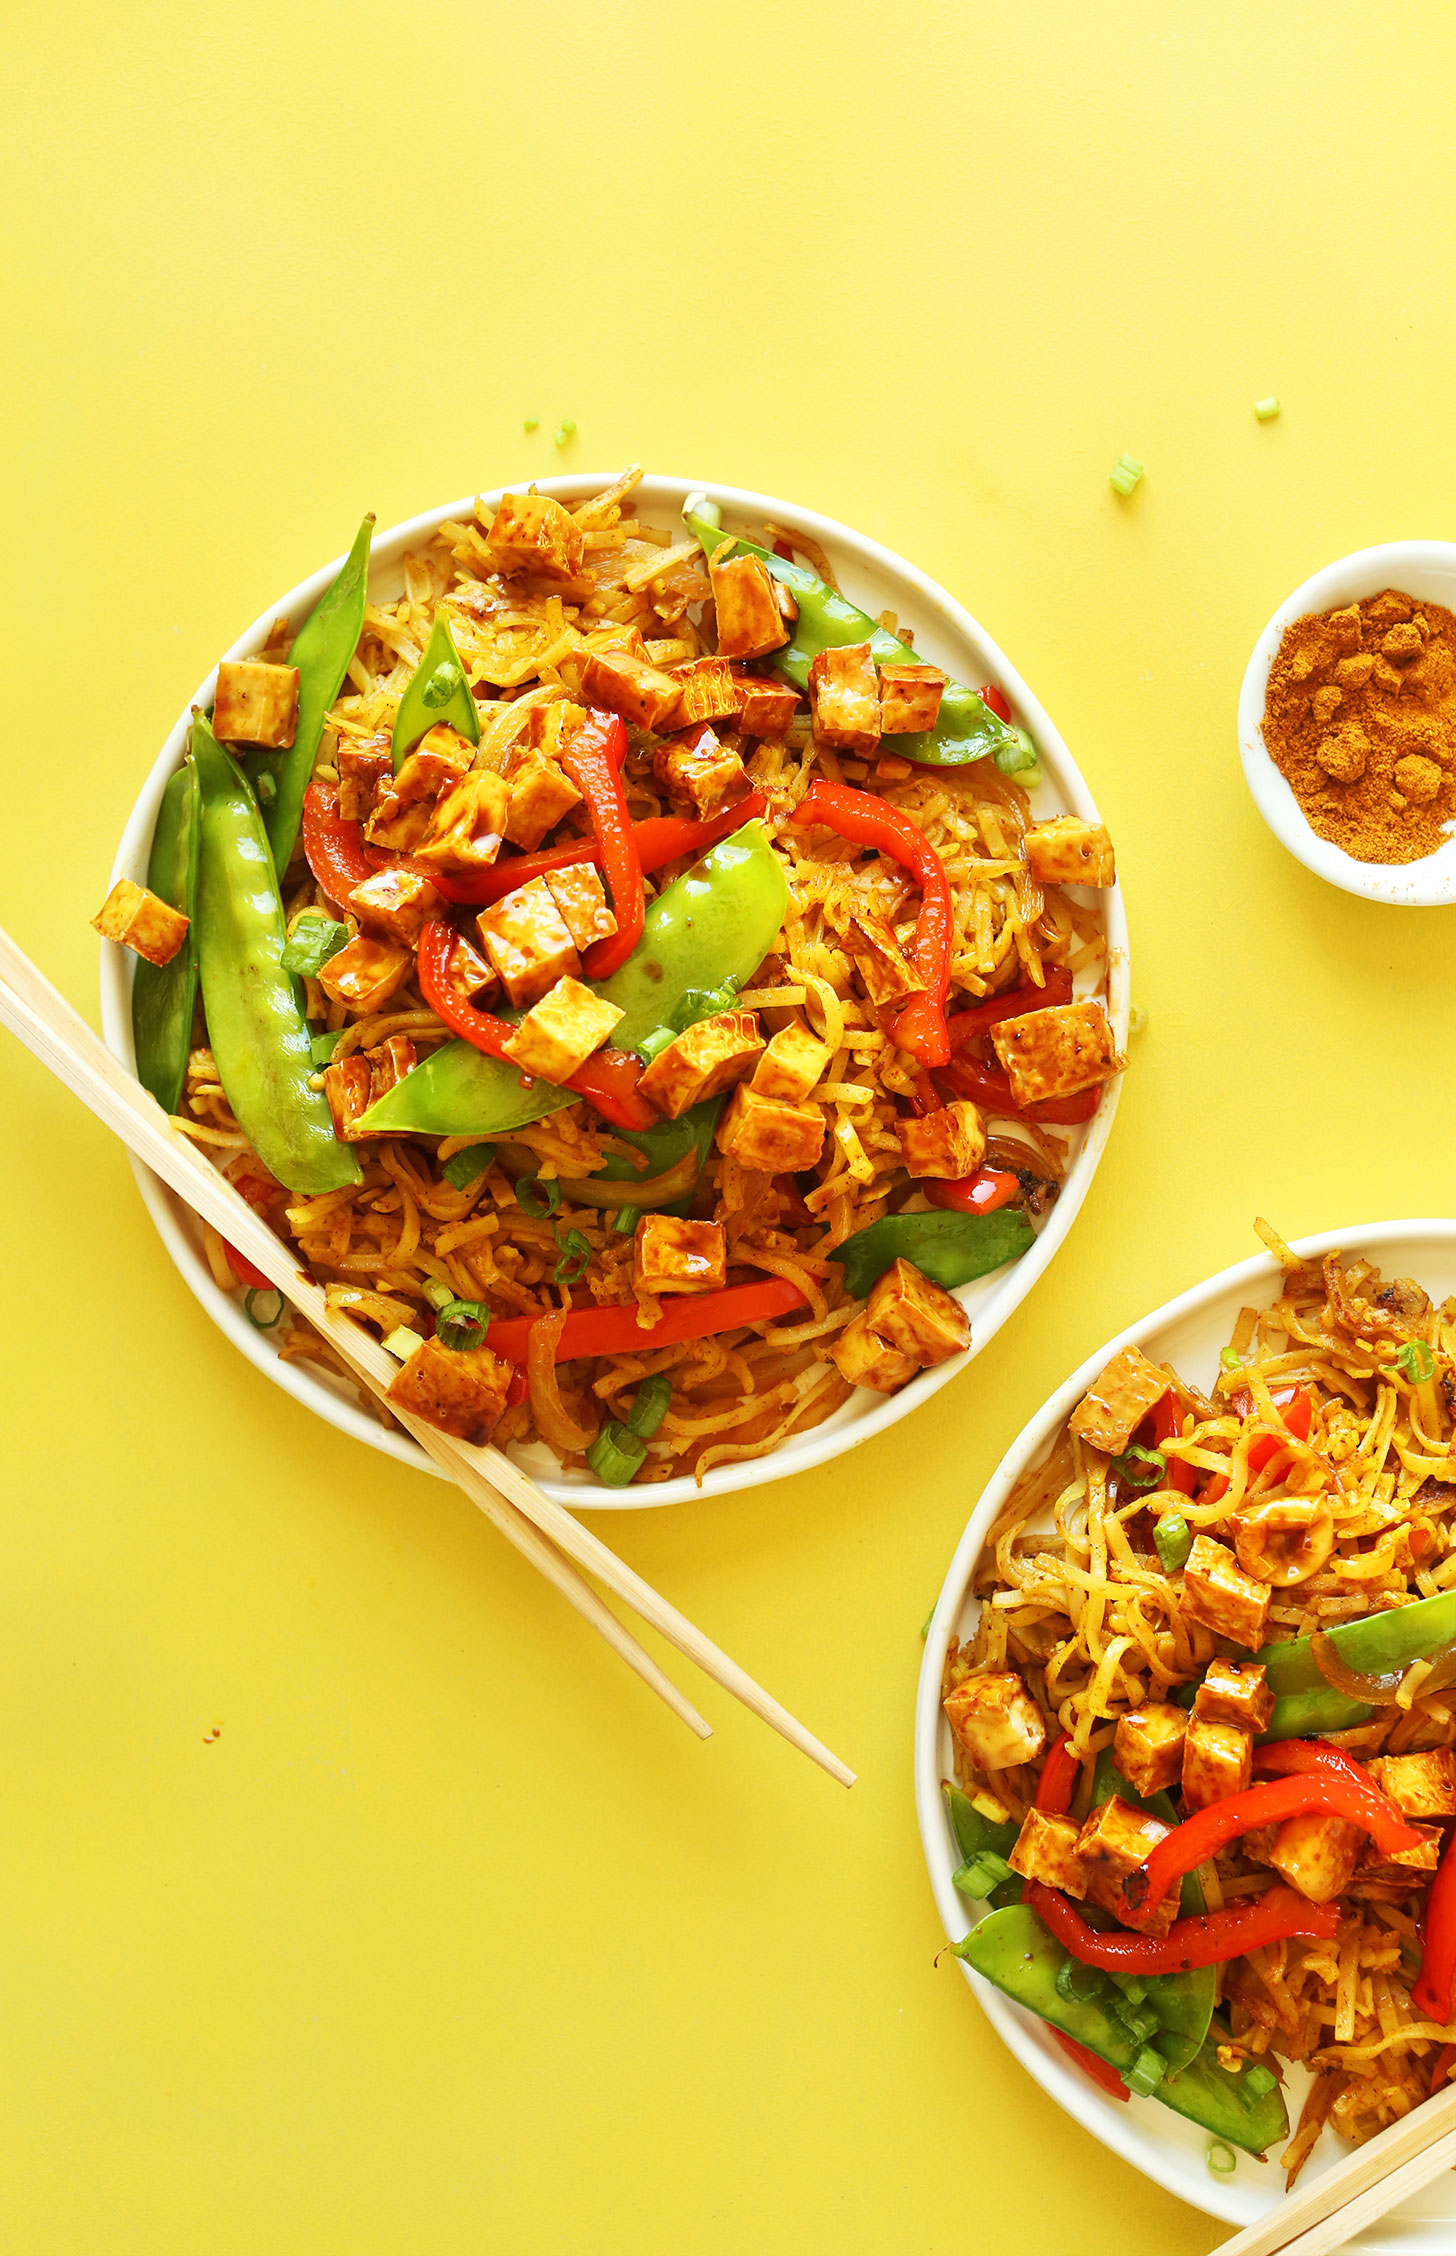 Dinner plates piled high with delicious Vegan Singapore Noodles for a flavorful simple meal